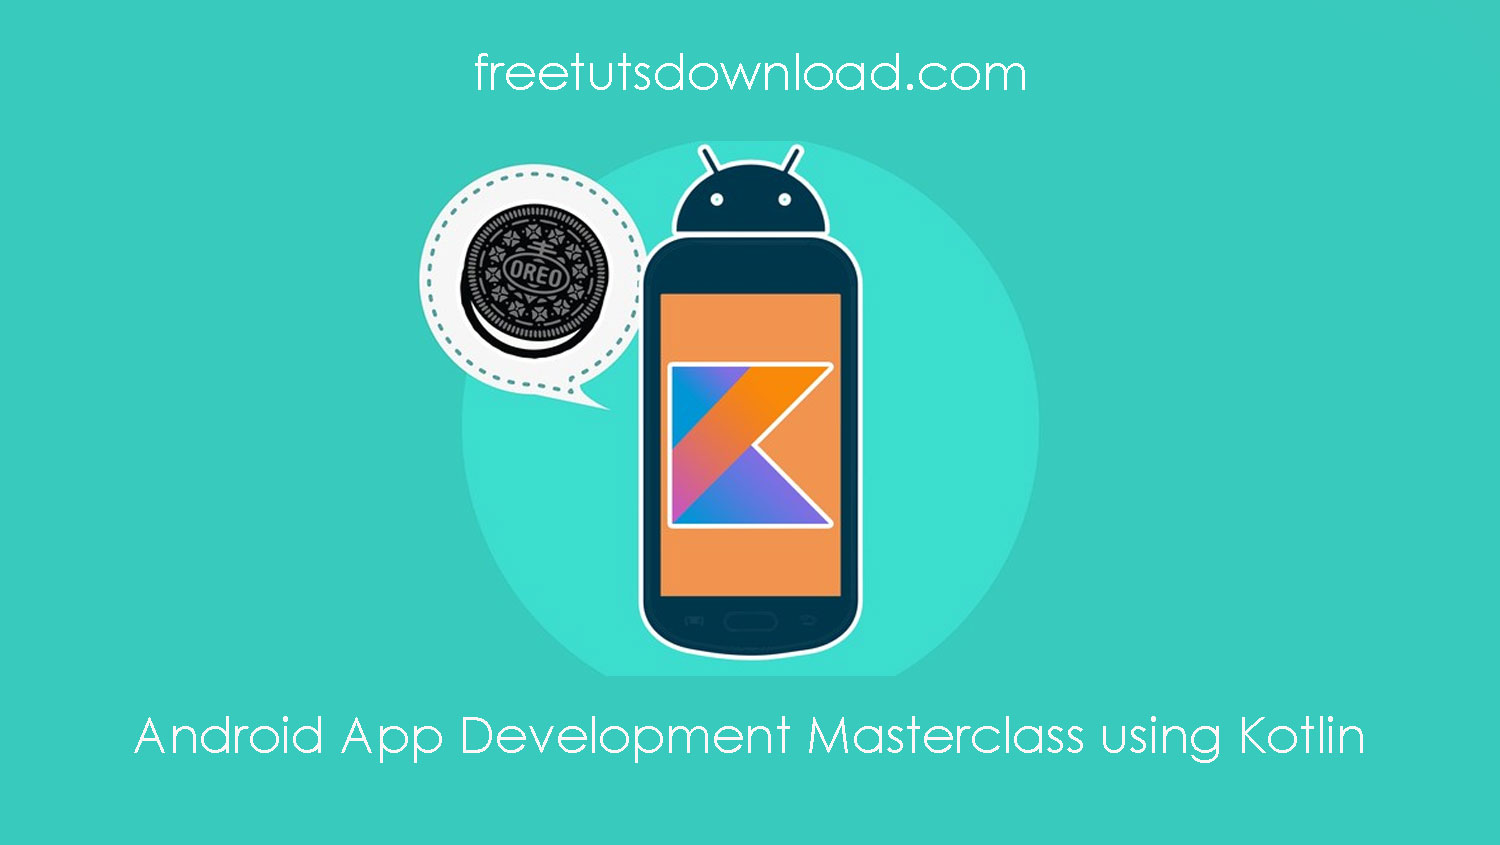 Android App Development Masterclass using Kotlin Free Download